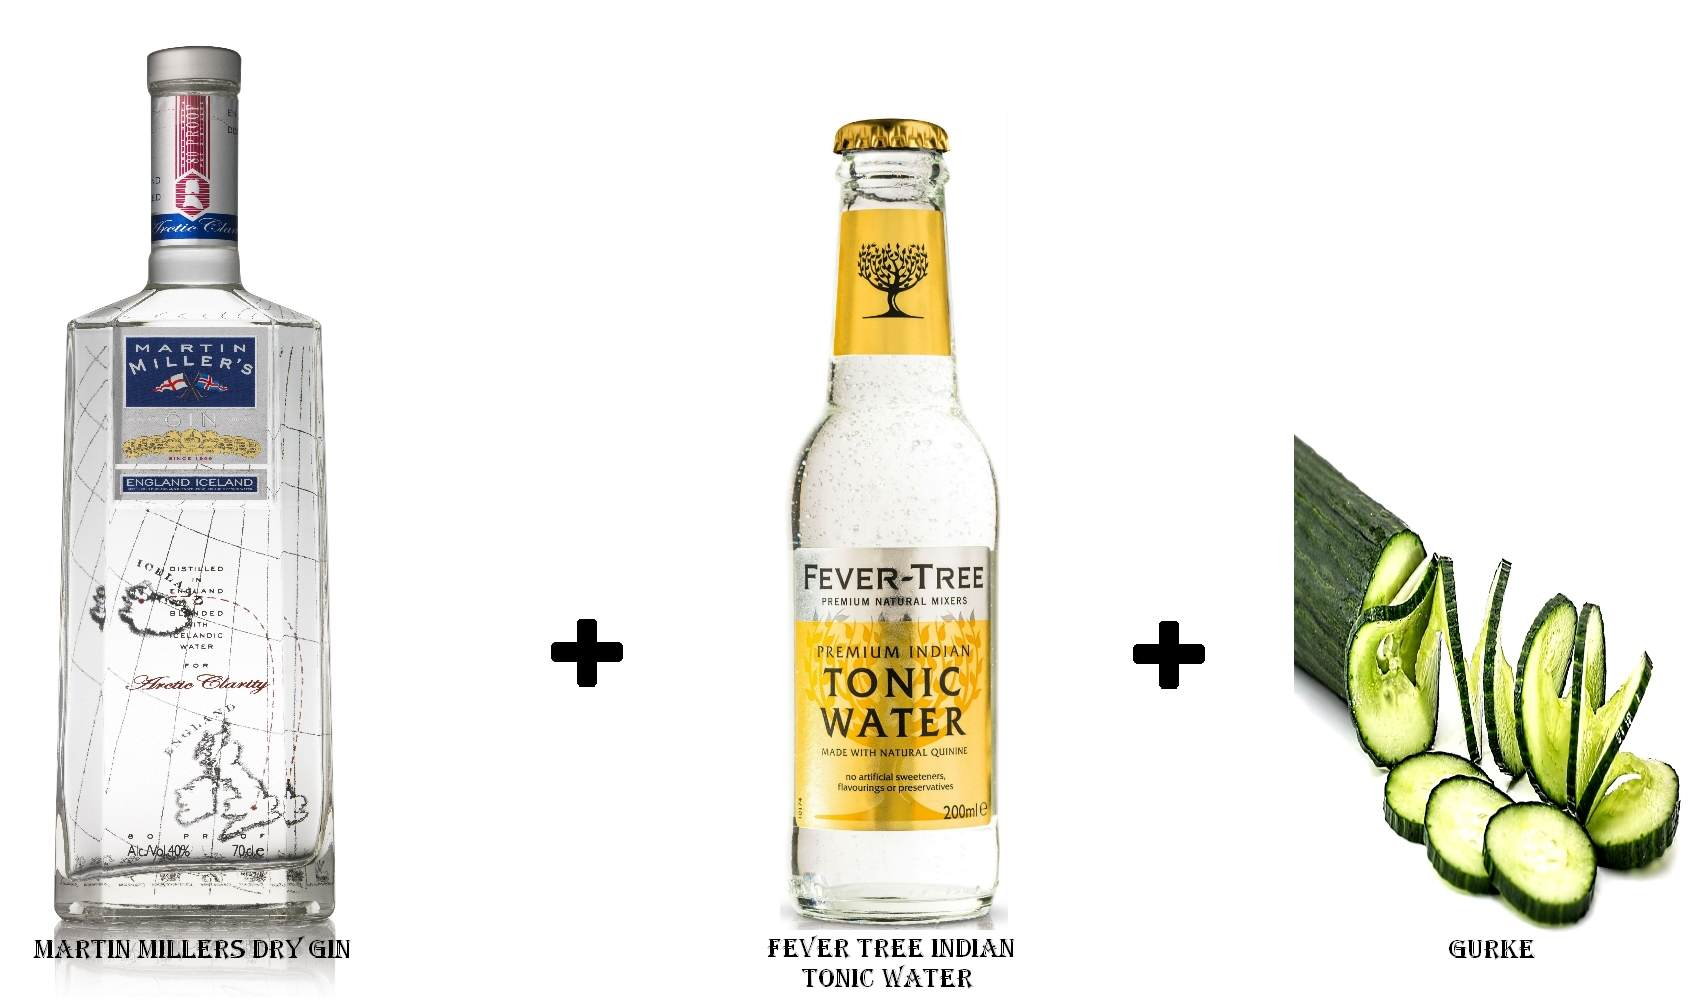 Martin Millers Dry Gin + Fever Tree Indian Tonic Water + Gurkenscheibe